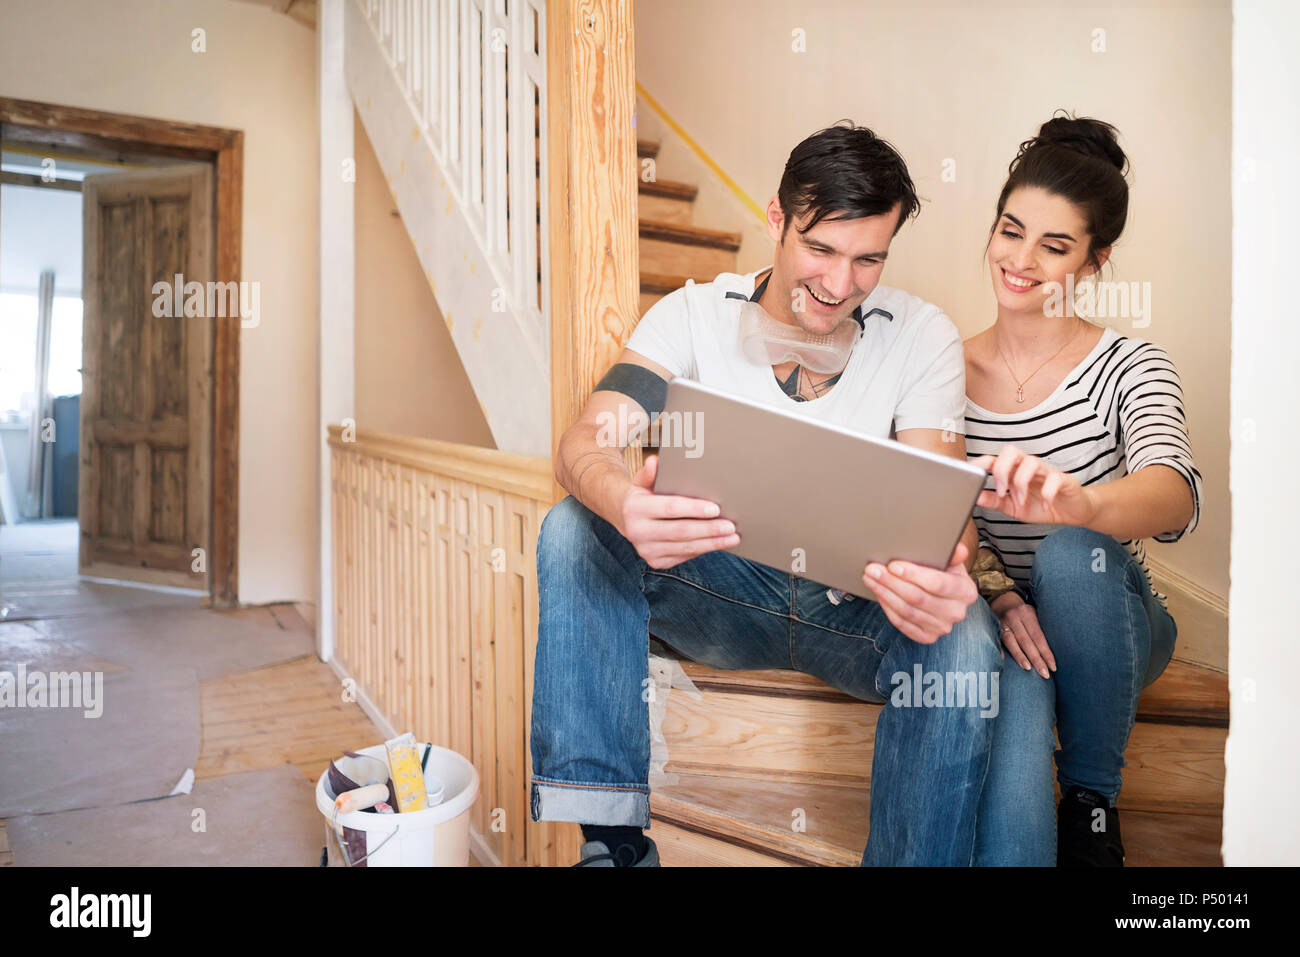 Young couple refurbishing new home, sitting on stairs using digital tablet - Stock Image